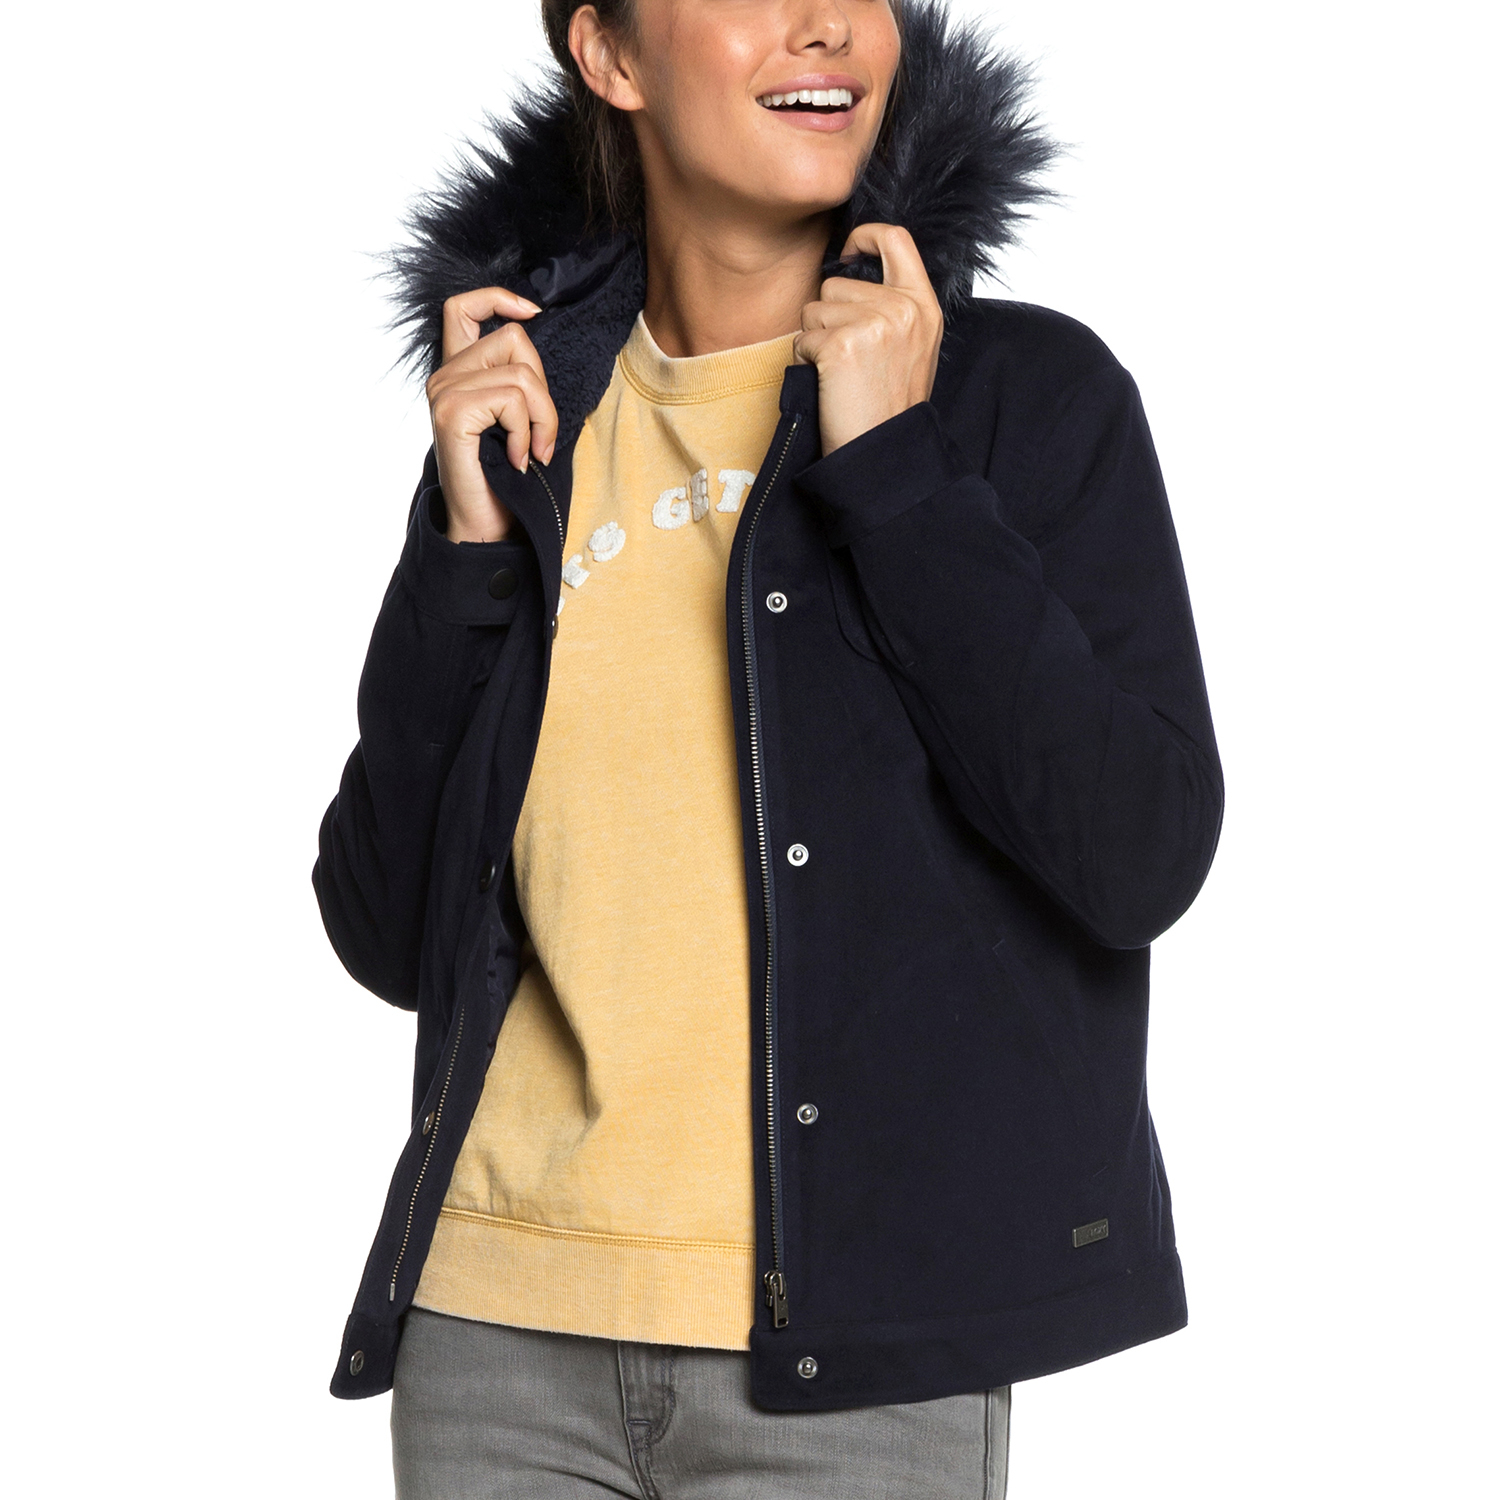 Snow Manteau Roxy Chic Manteau And Pk0nwN8OZX